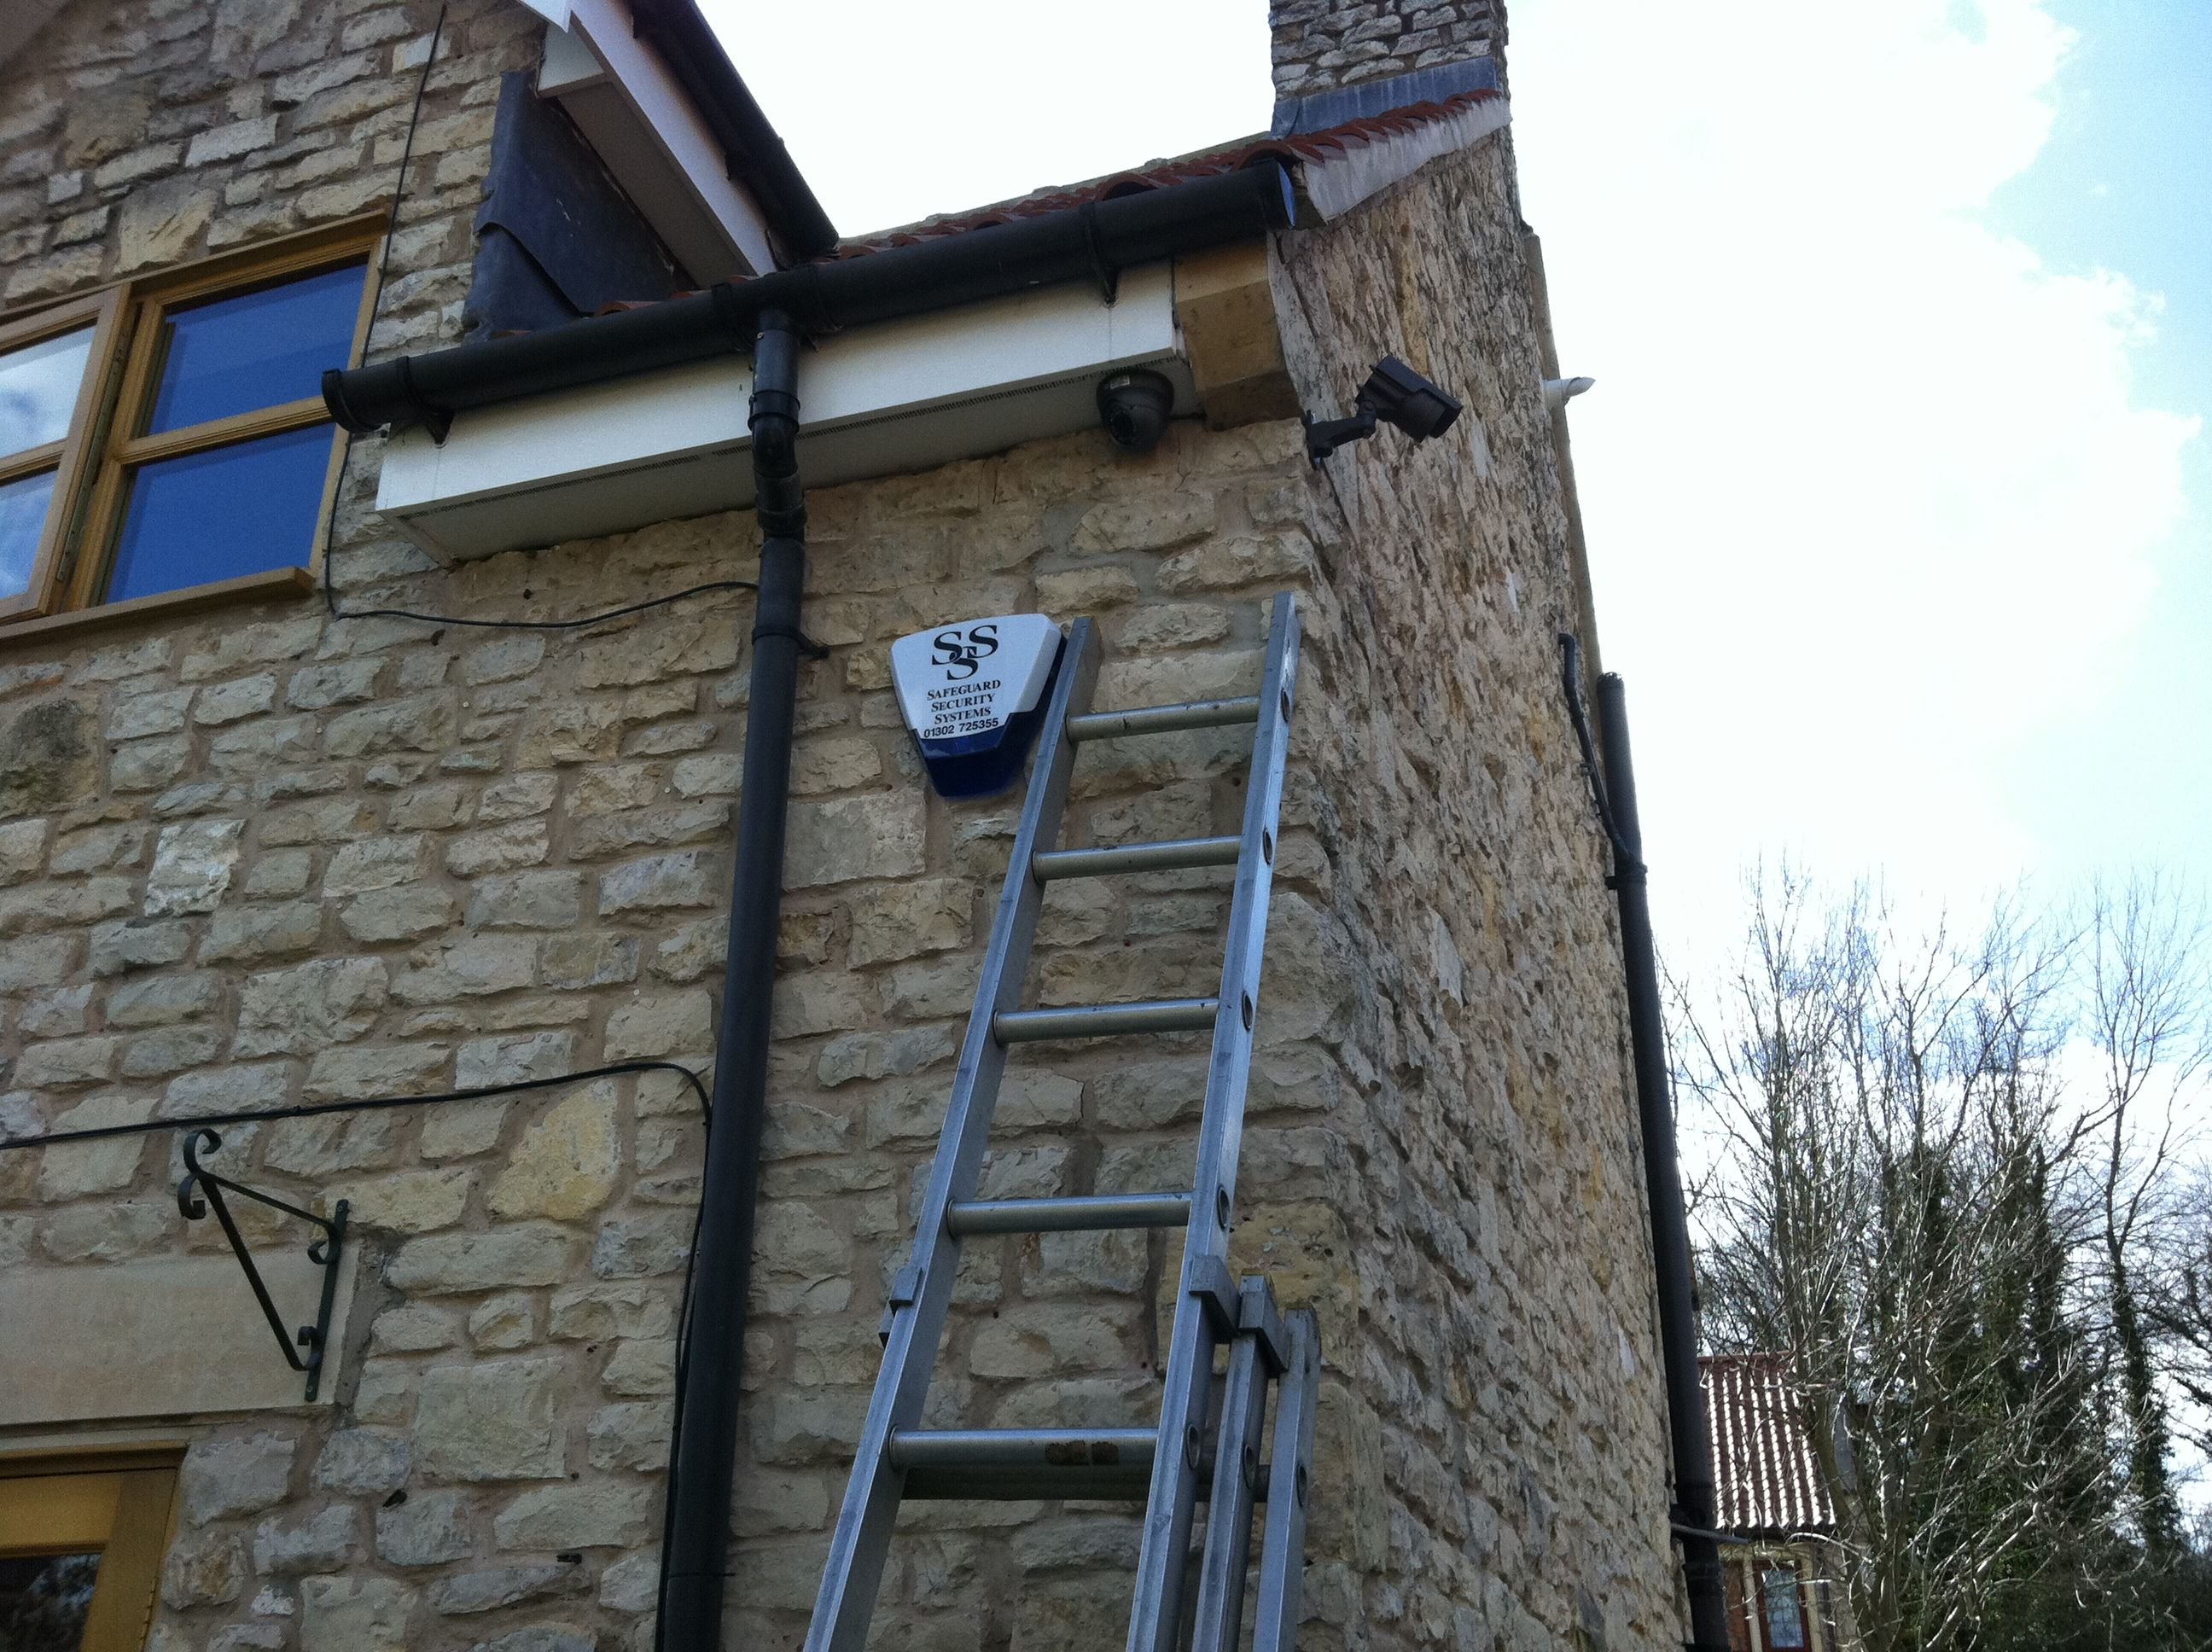 Take a look at our Burglar Alarm Systems by Securesys in ...